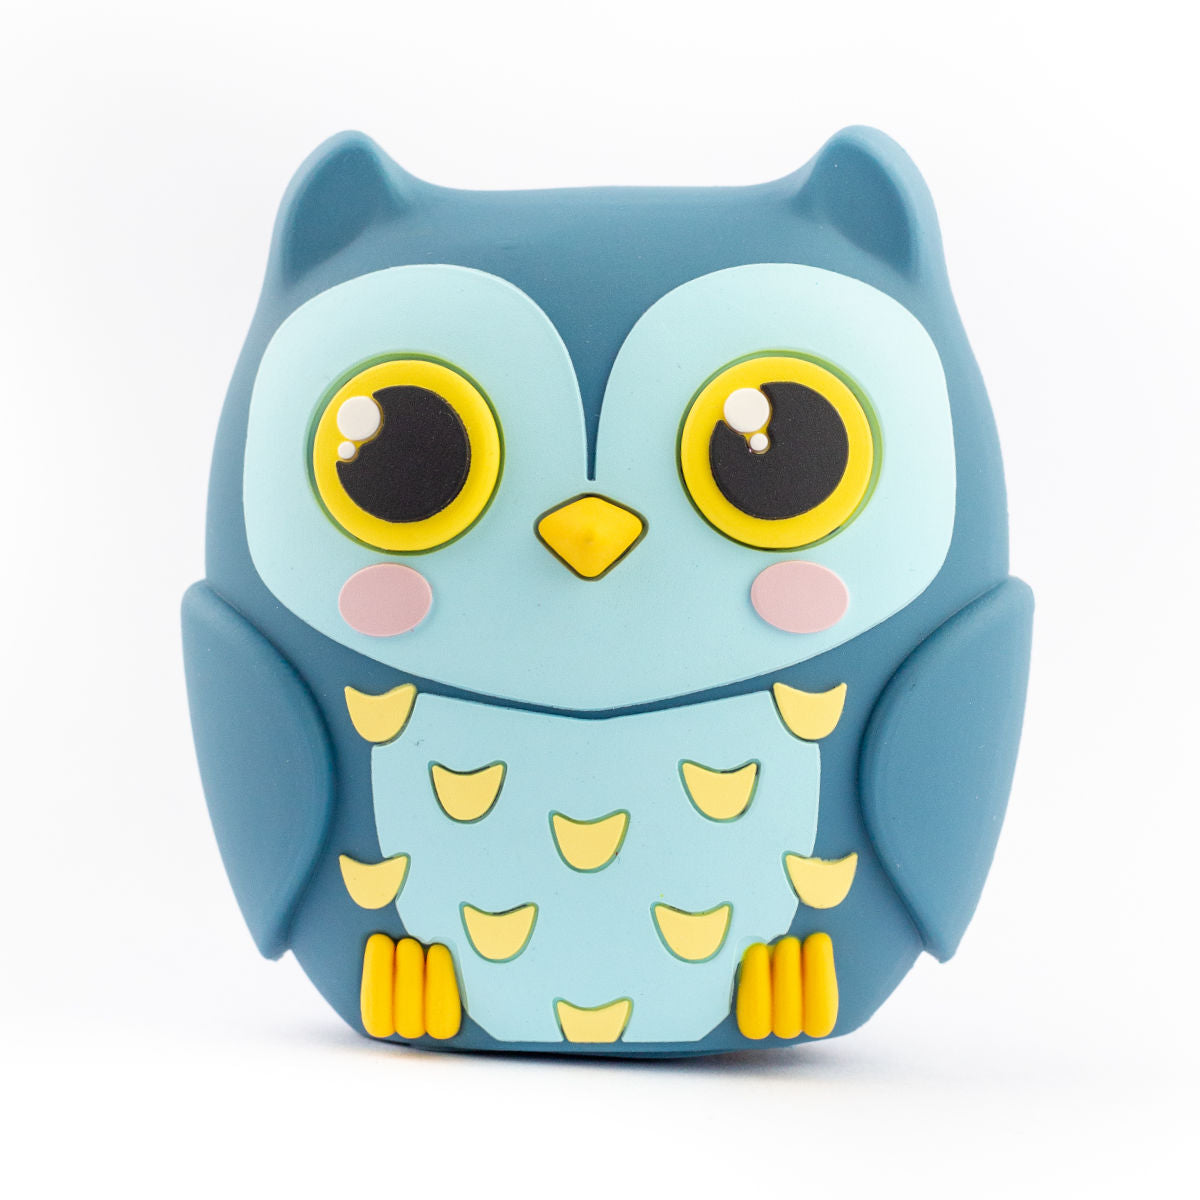 Moji Emoji power bank 2600mAh, baby owl